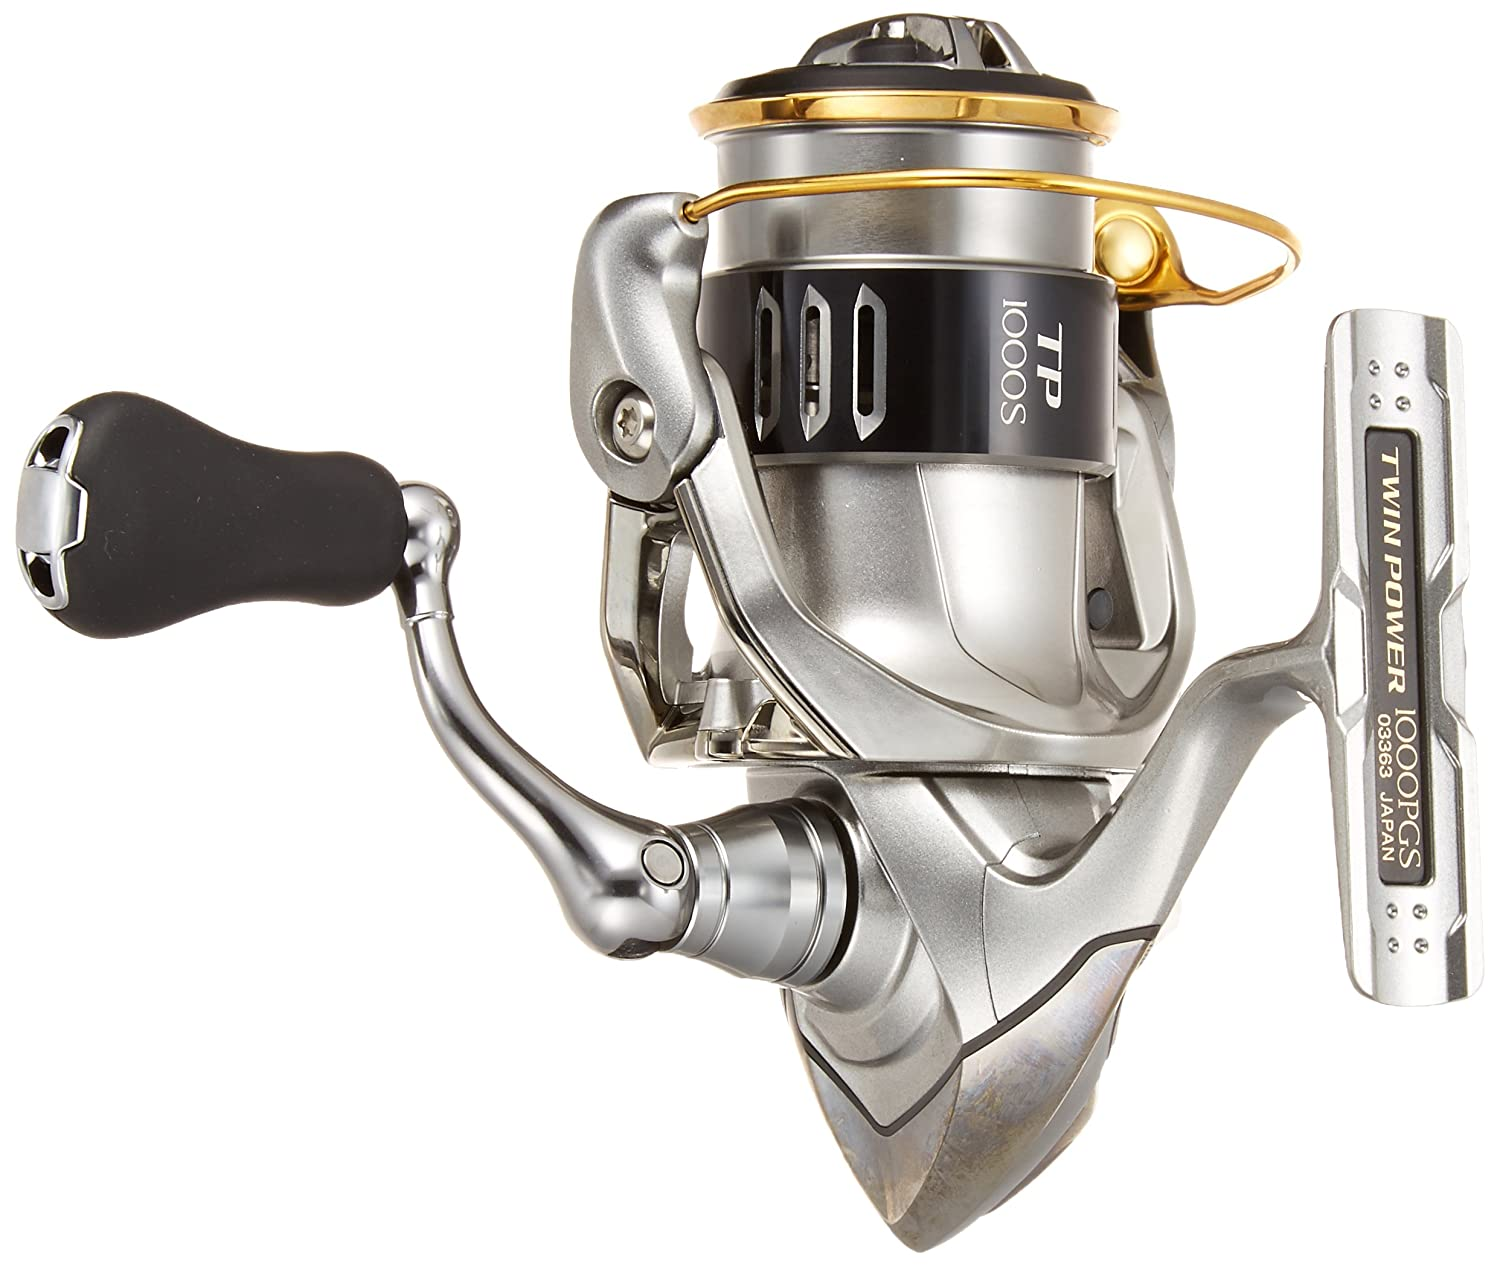 8d861c918c9 Amazon.com : Shimano 15 TWIN POWER 1000PGS [Japan Import] : Sports &  Outdoors